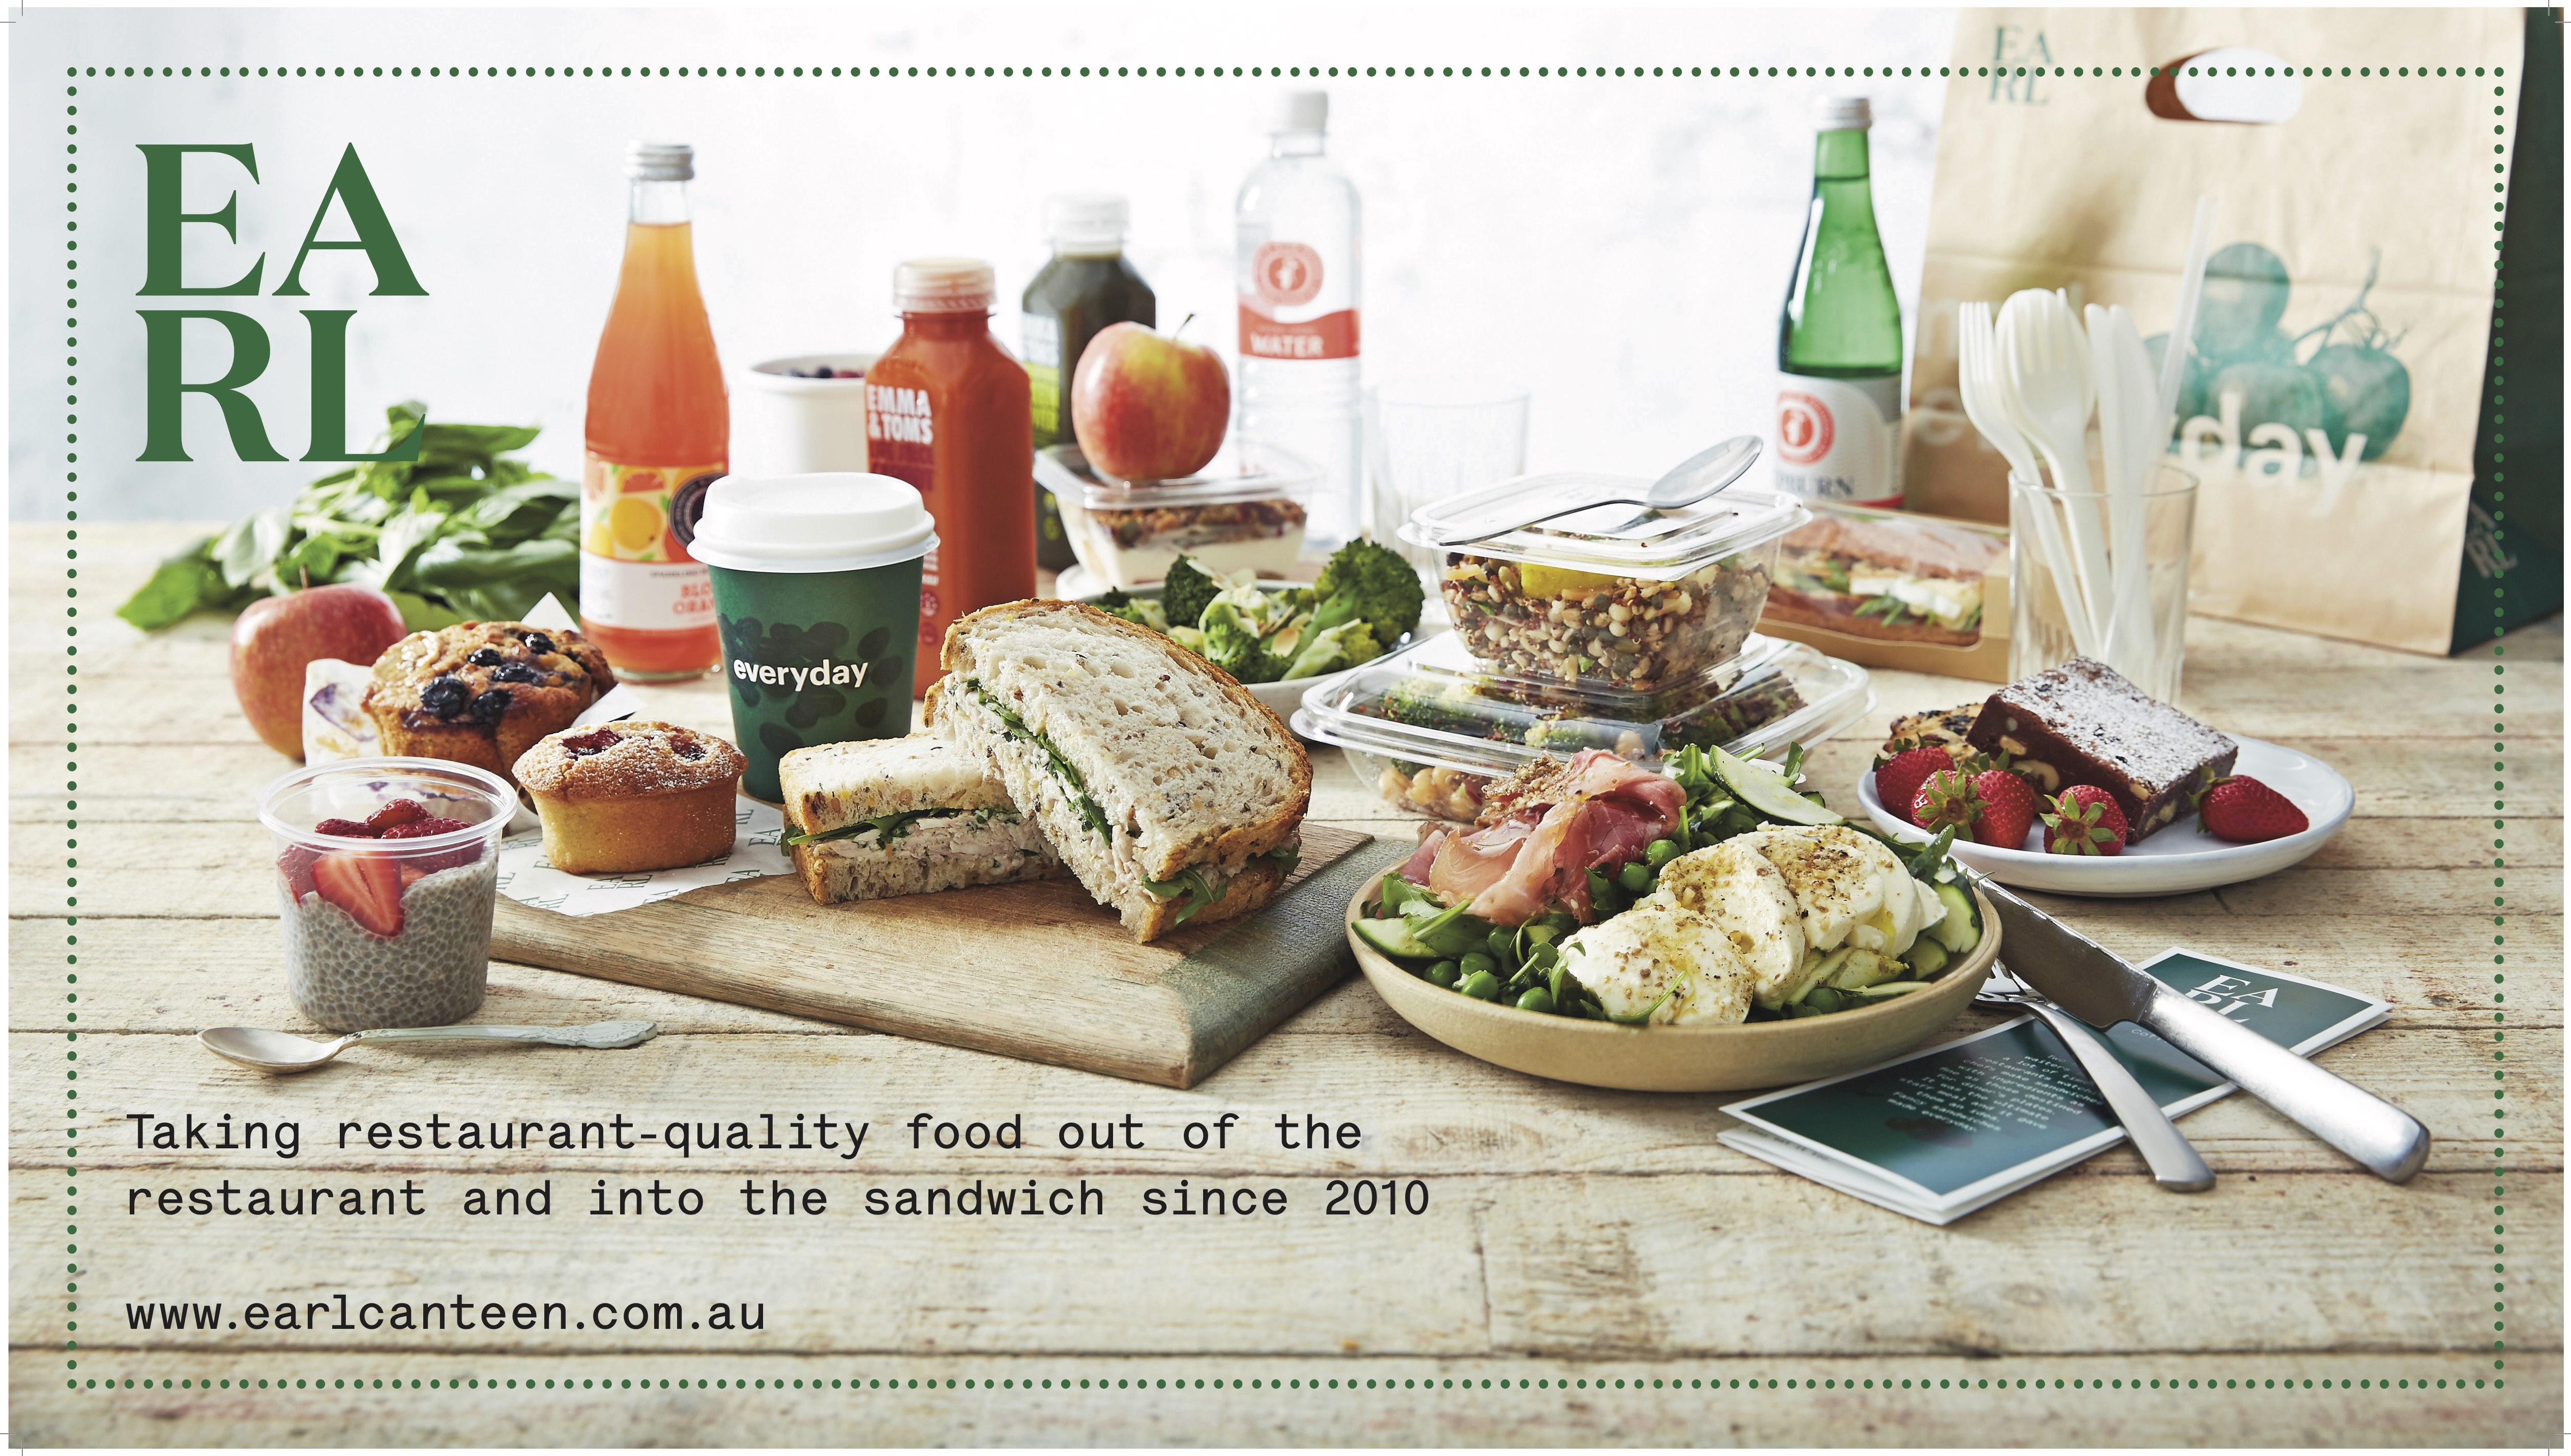 EARL Canteen | NEW Sandwich, Salad & Coffee Opportuntity | Melbourne